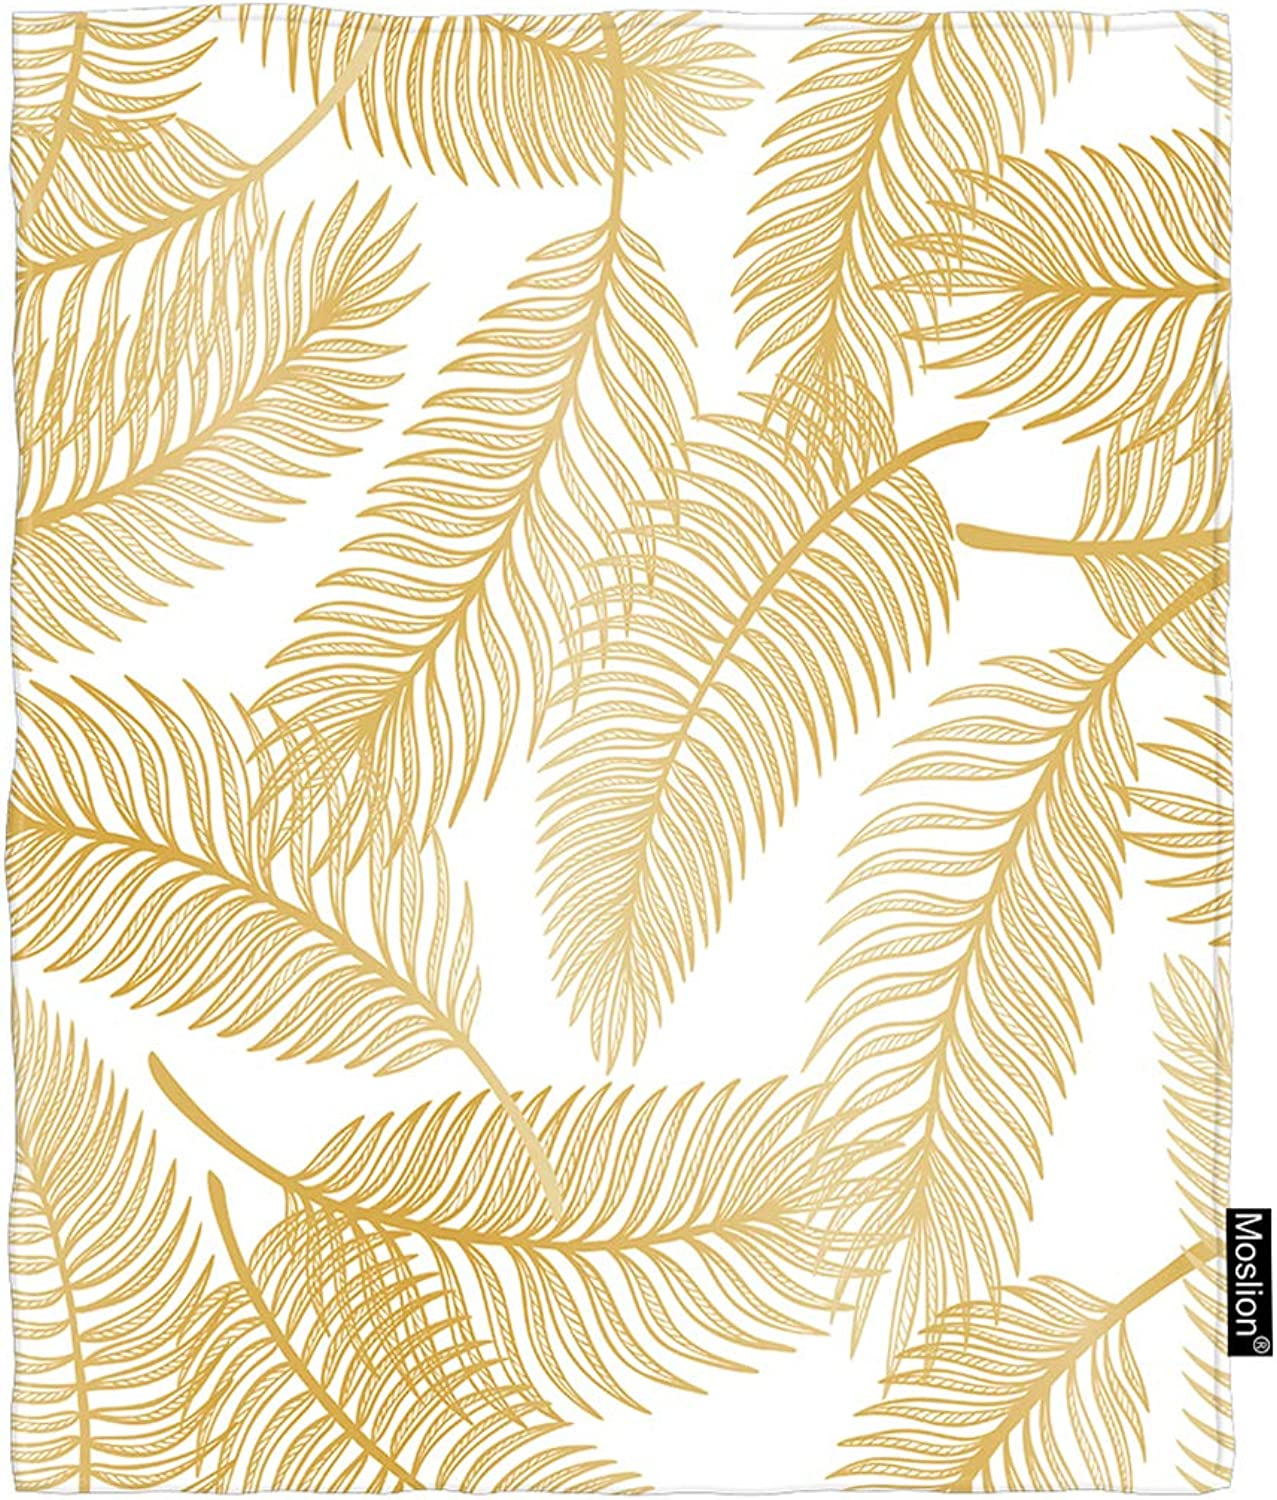 Moslion Leaf Blanket Vintage golden Autumn Tropical Palm Leaf Tree Branch in Forest Throw Blanket Flannel Home Decorative Soft Cozy Blankets 60x80 Inch for Adults Kids Sofa